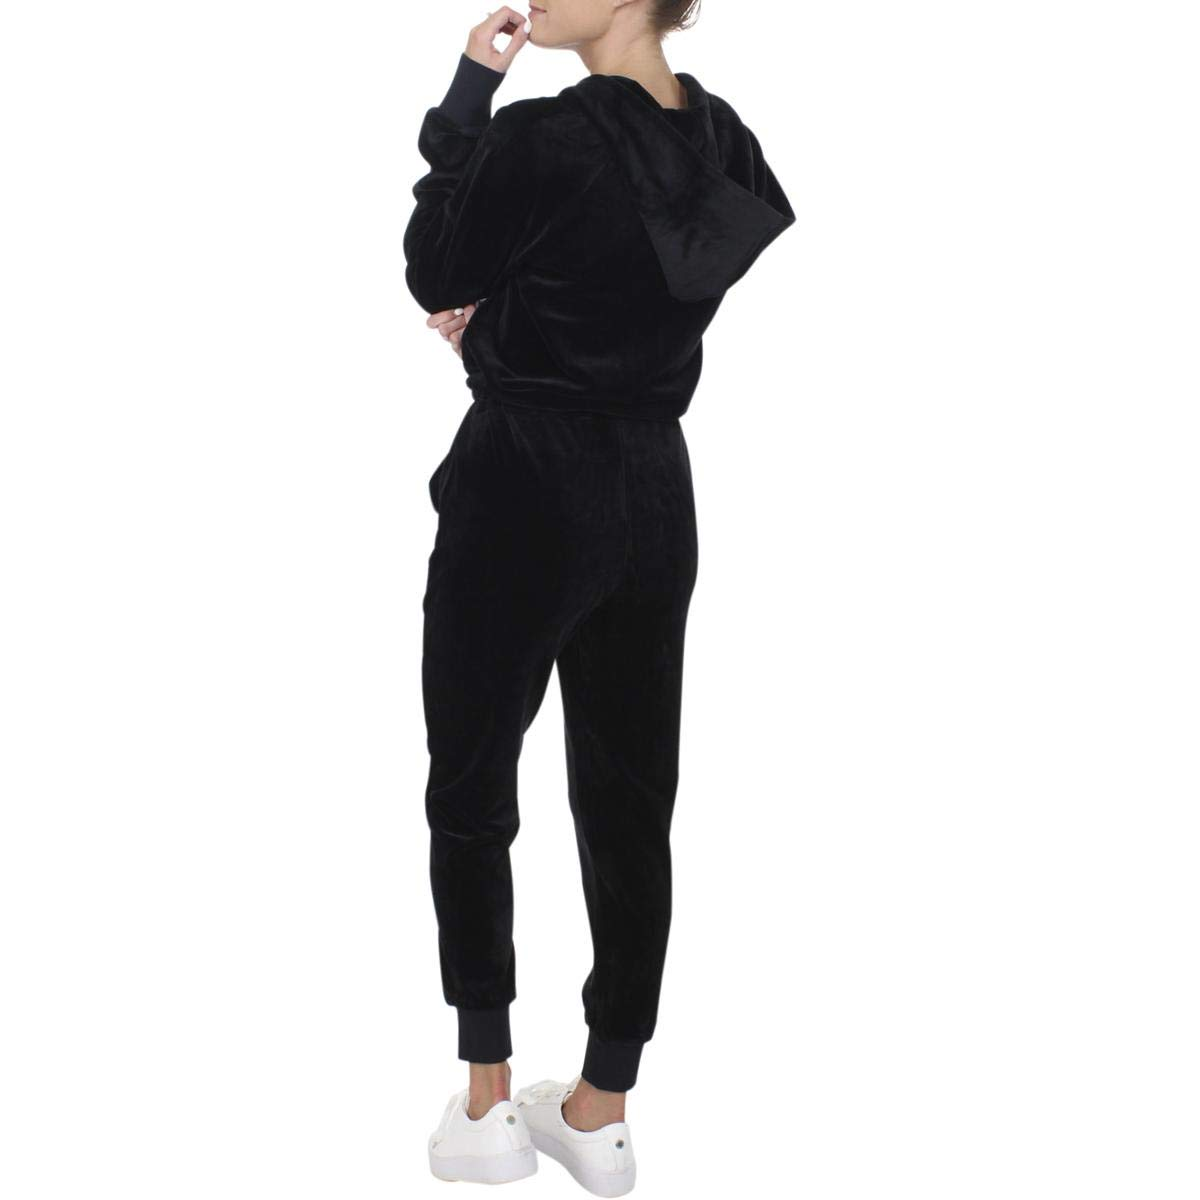 71c7eed6a785 Juicy Couture Black Label Womens Ultra Luxe Velour Hooded Casual Jogger  Jumpsuit